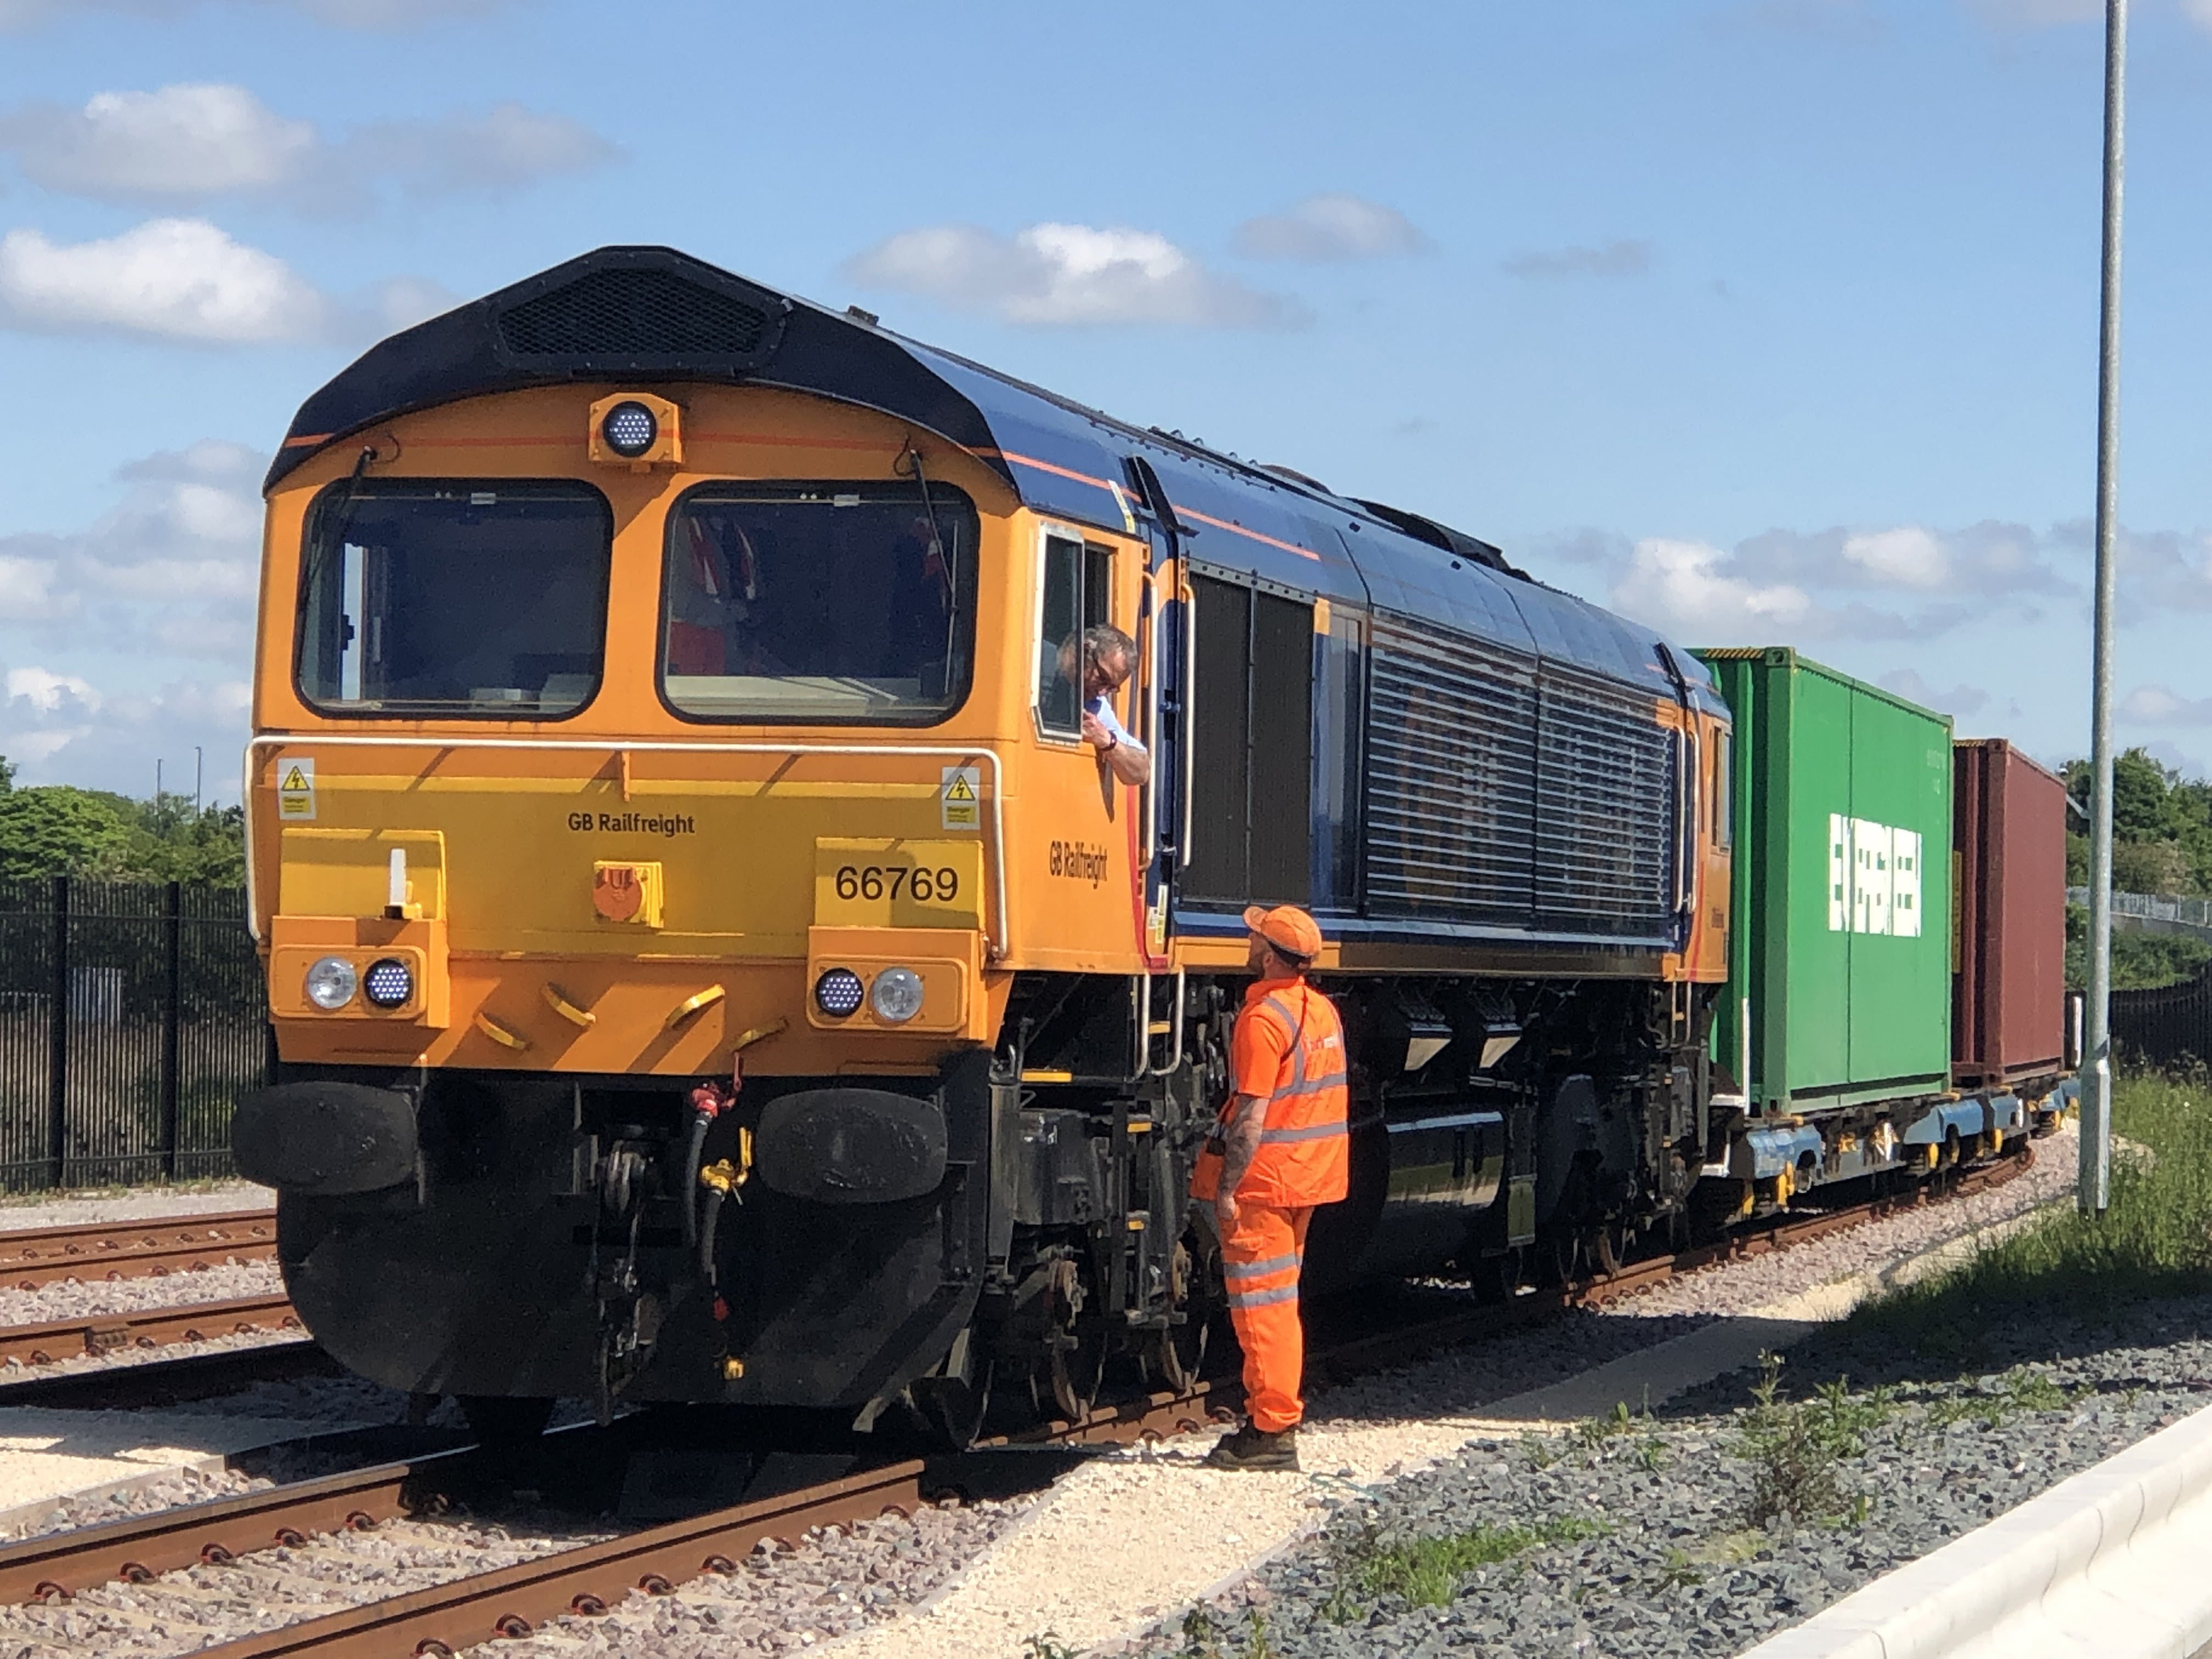 New GBRf Felixstowe service arriving at iPort Rail Doncaster 210519 4 iPort Rail